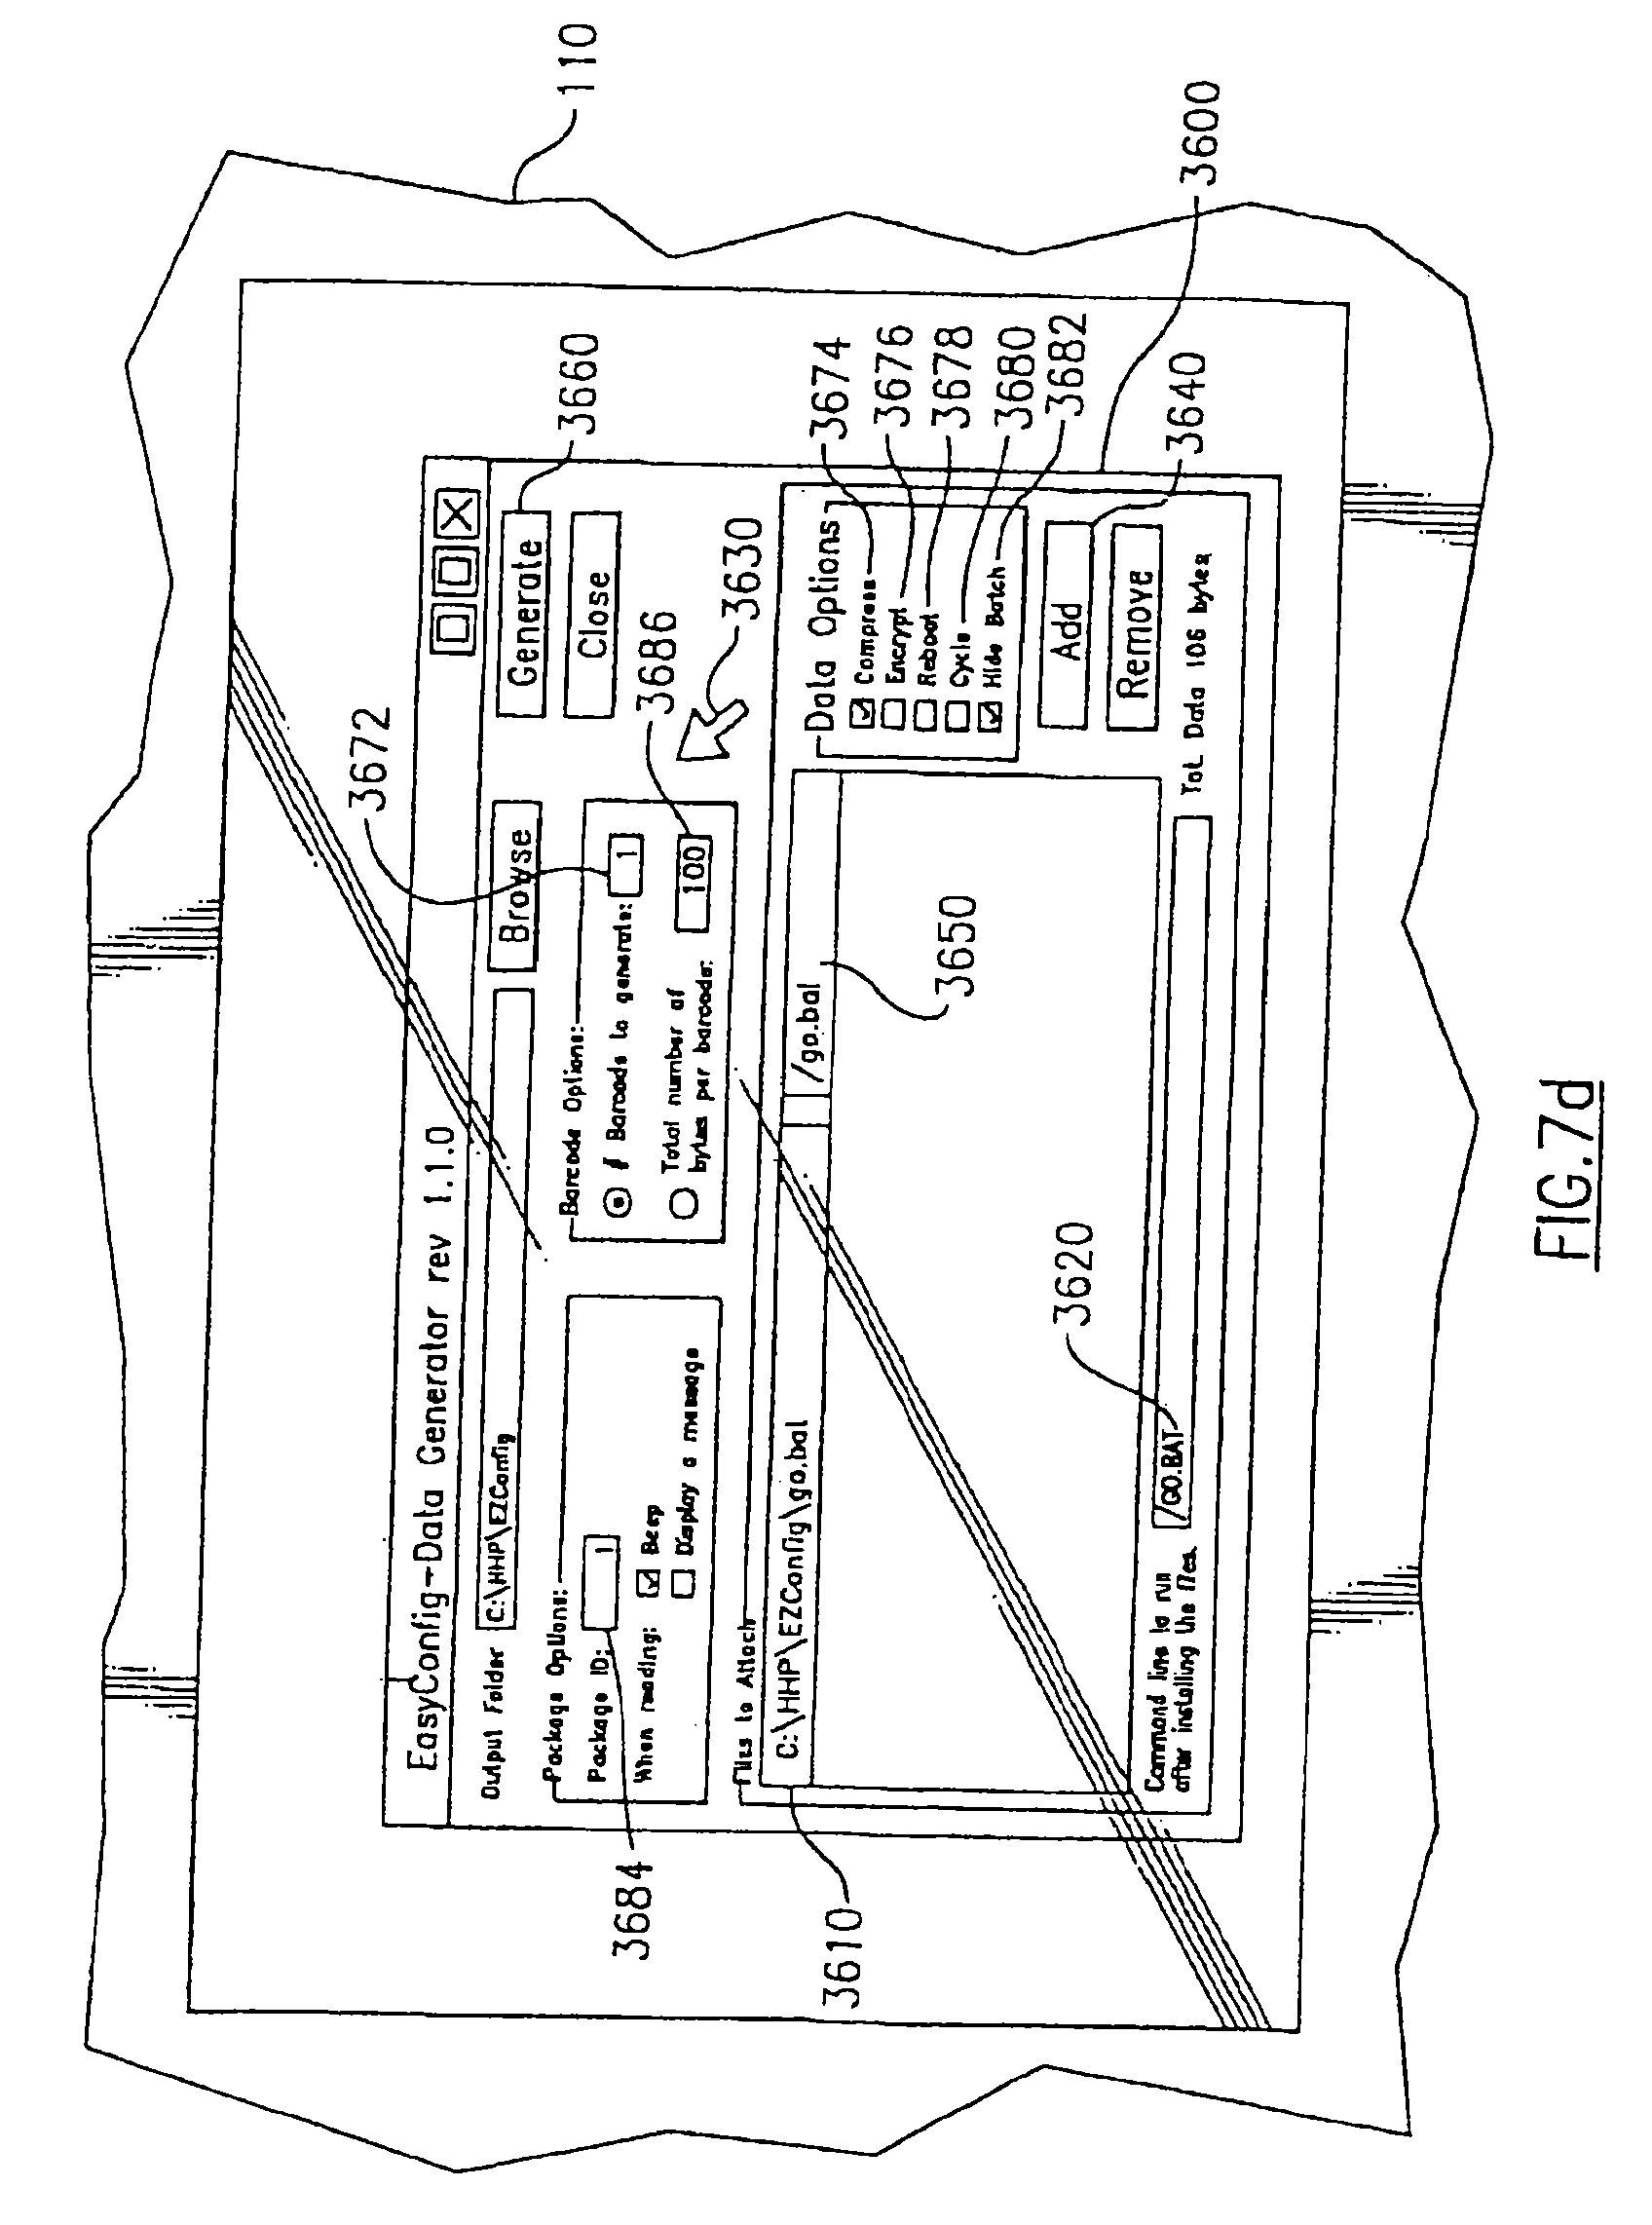 Patent Us 8985457 B2 Aaa C Wire Color Diagram Typical Single Line Unit Images